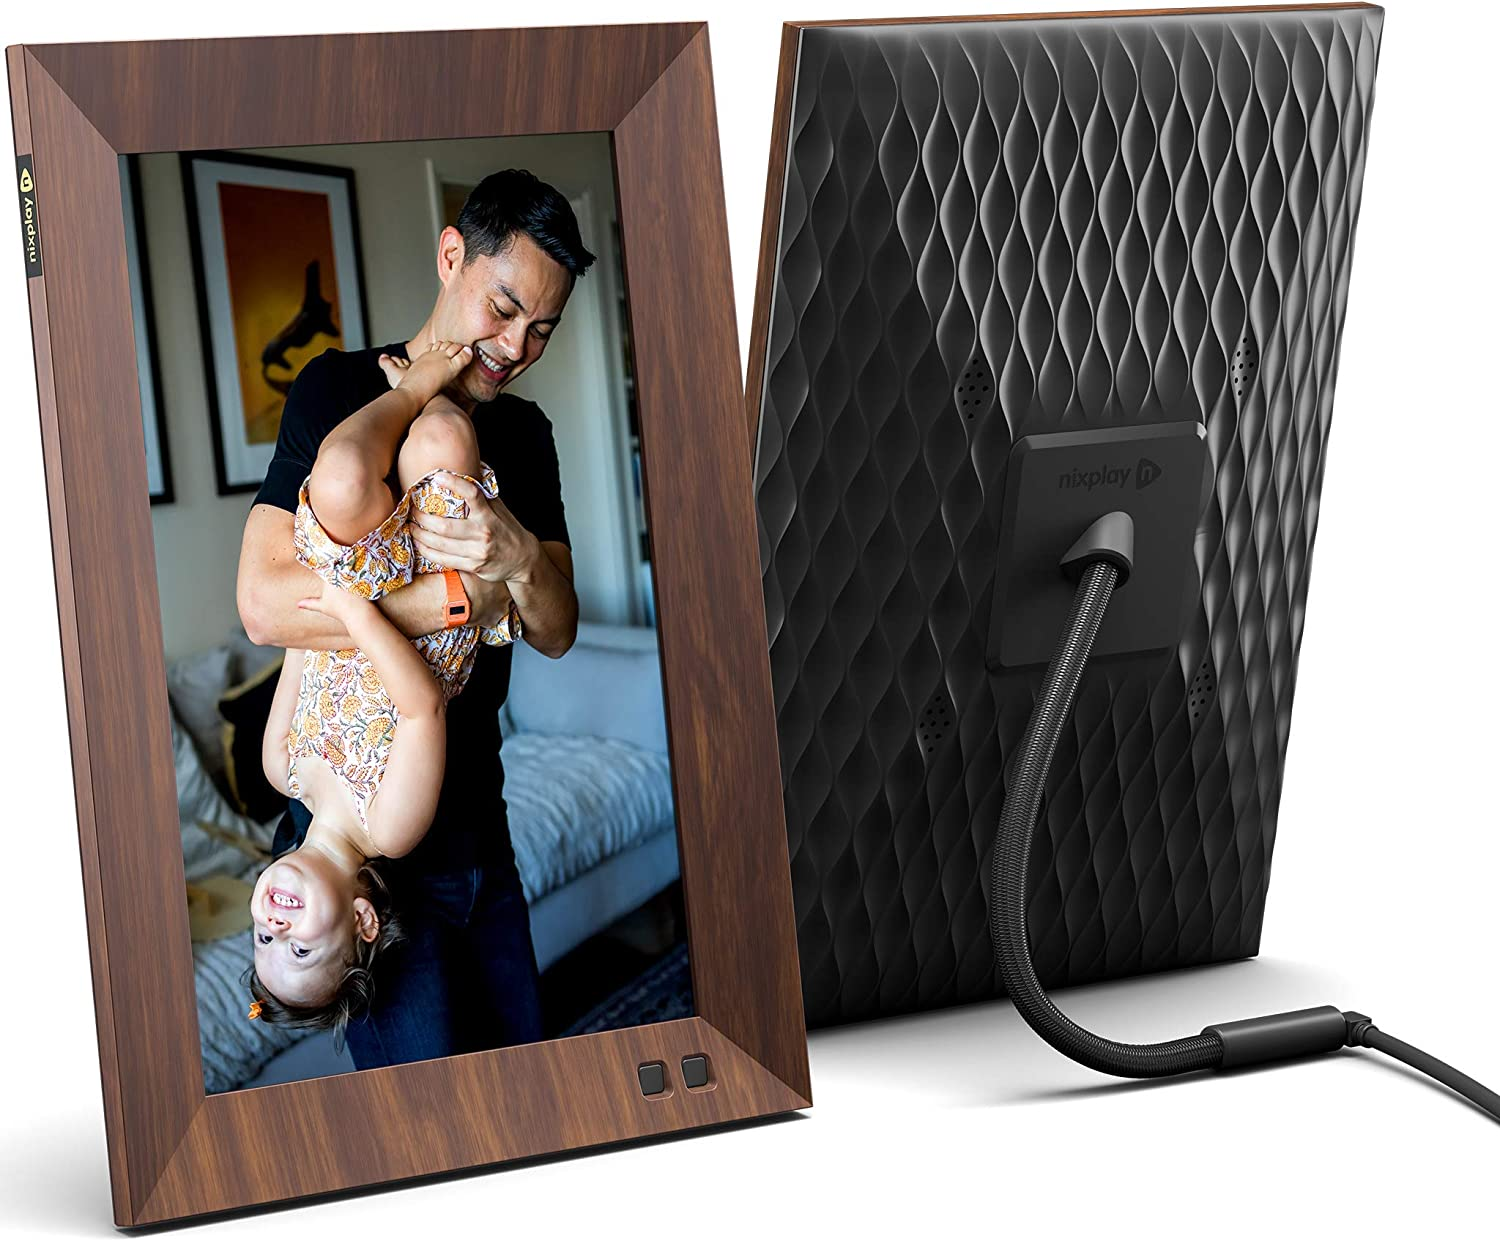 Nixplay 10.1″ Smart Digital Picture Frame with Alexa